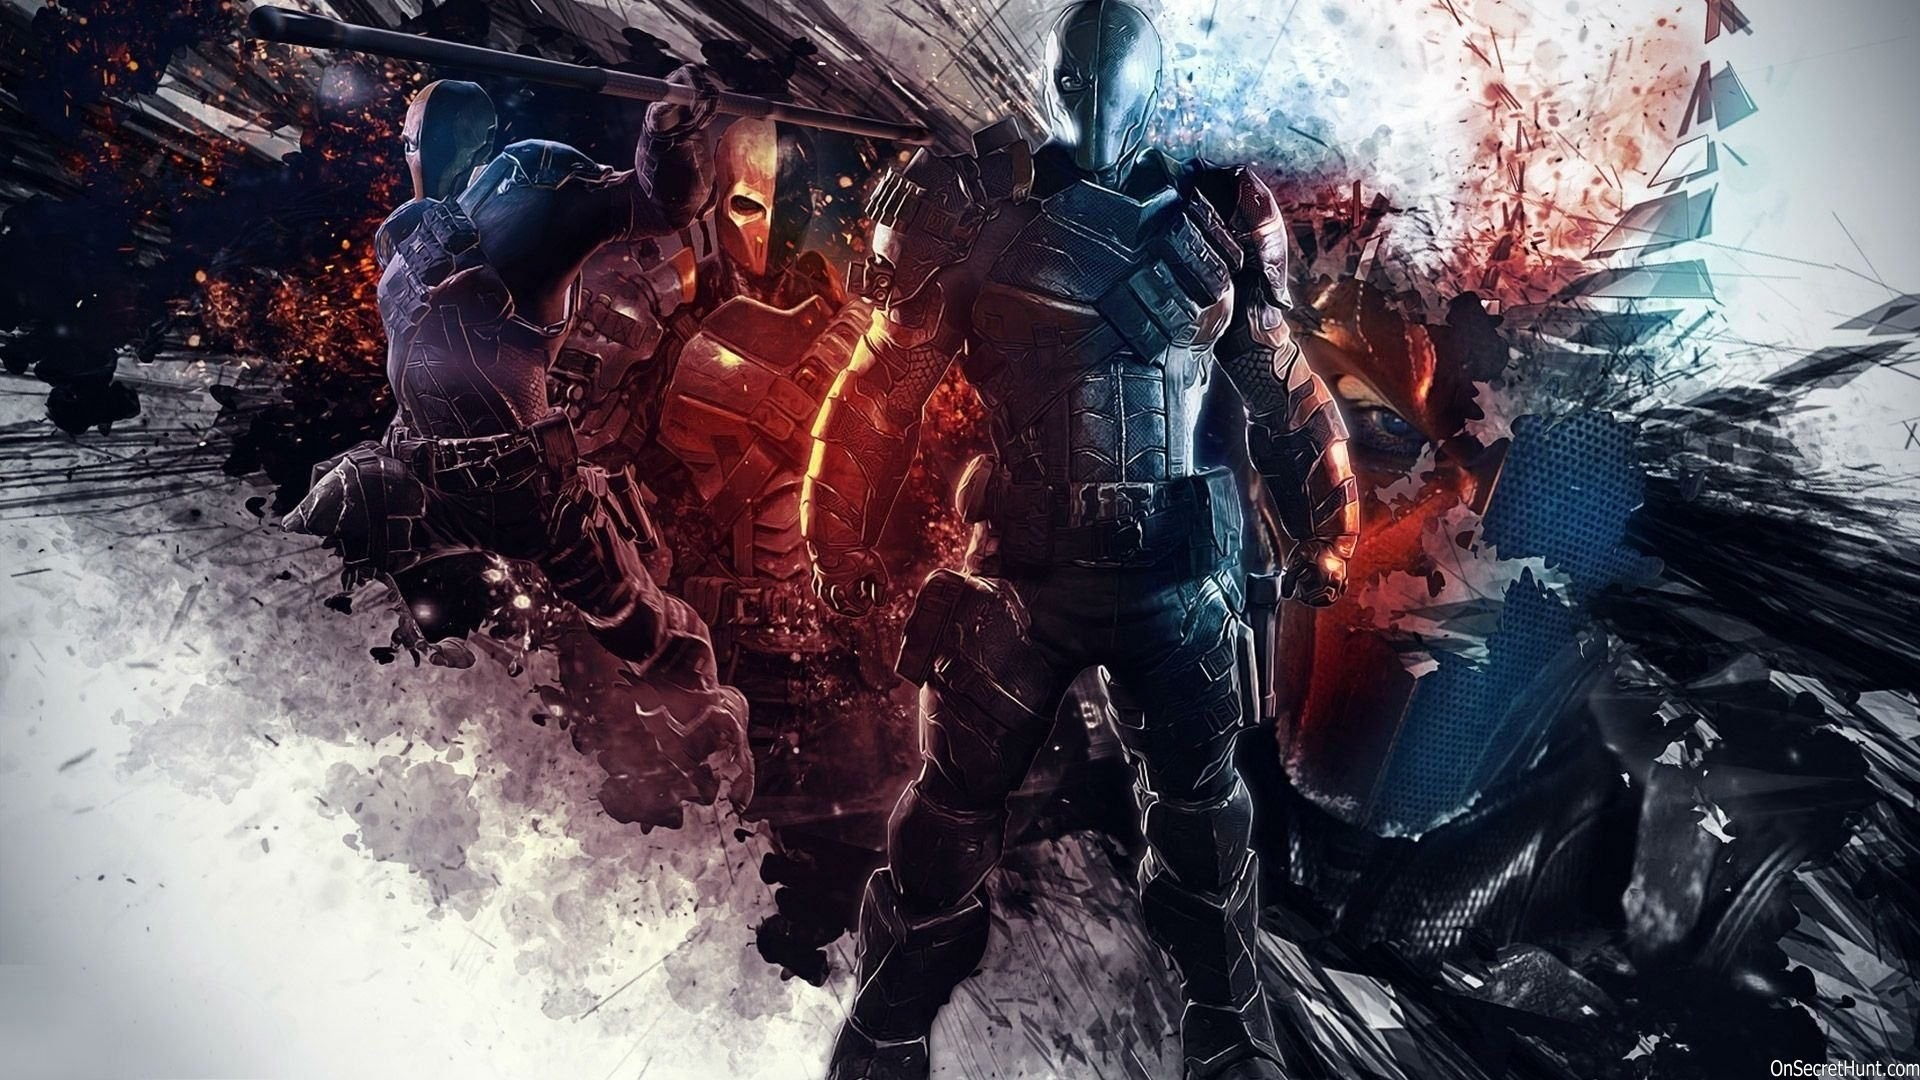 Deathstroke Wallpaper Download Free Awesome Full HD